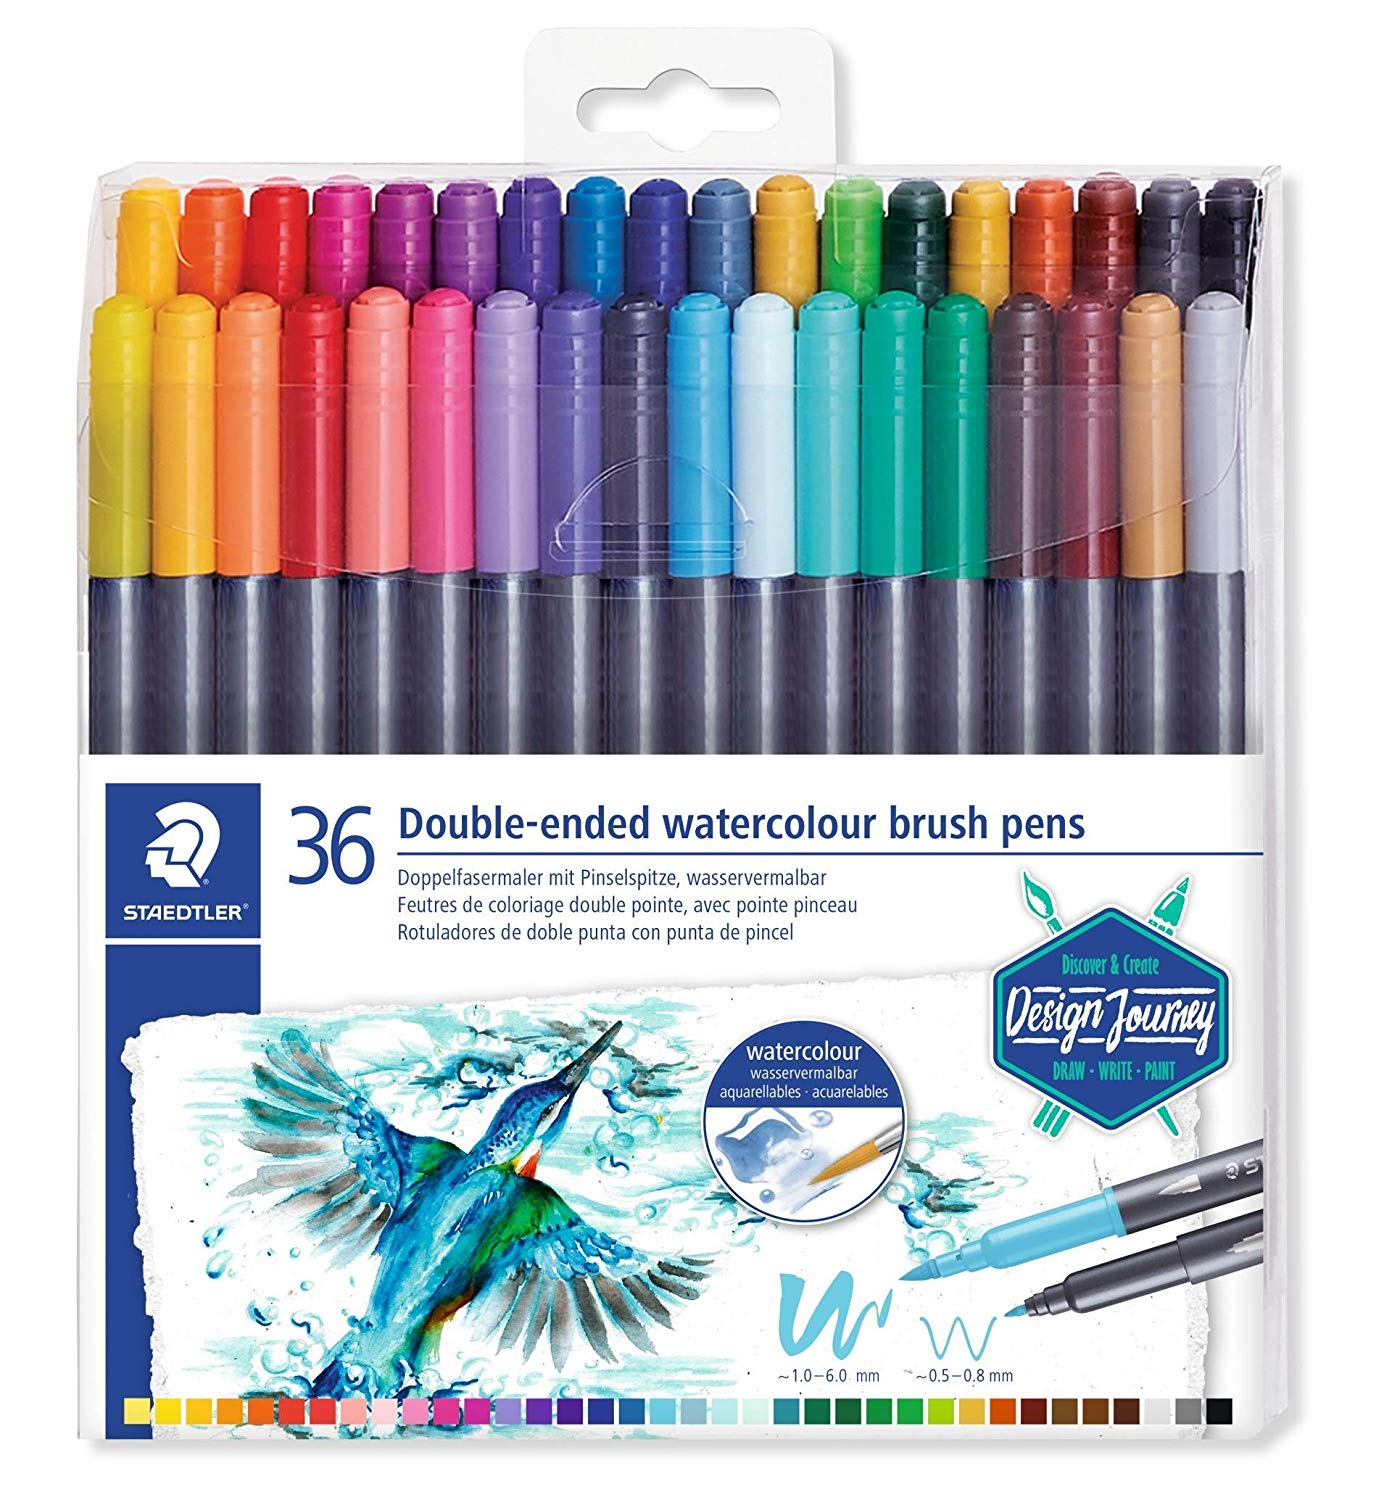 STAEDTLER 3001 TB36 Double Ended Watercolour Brush Pens, Pack of 36